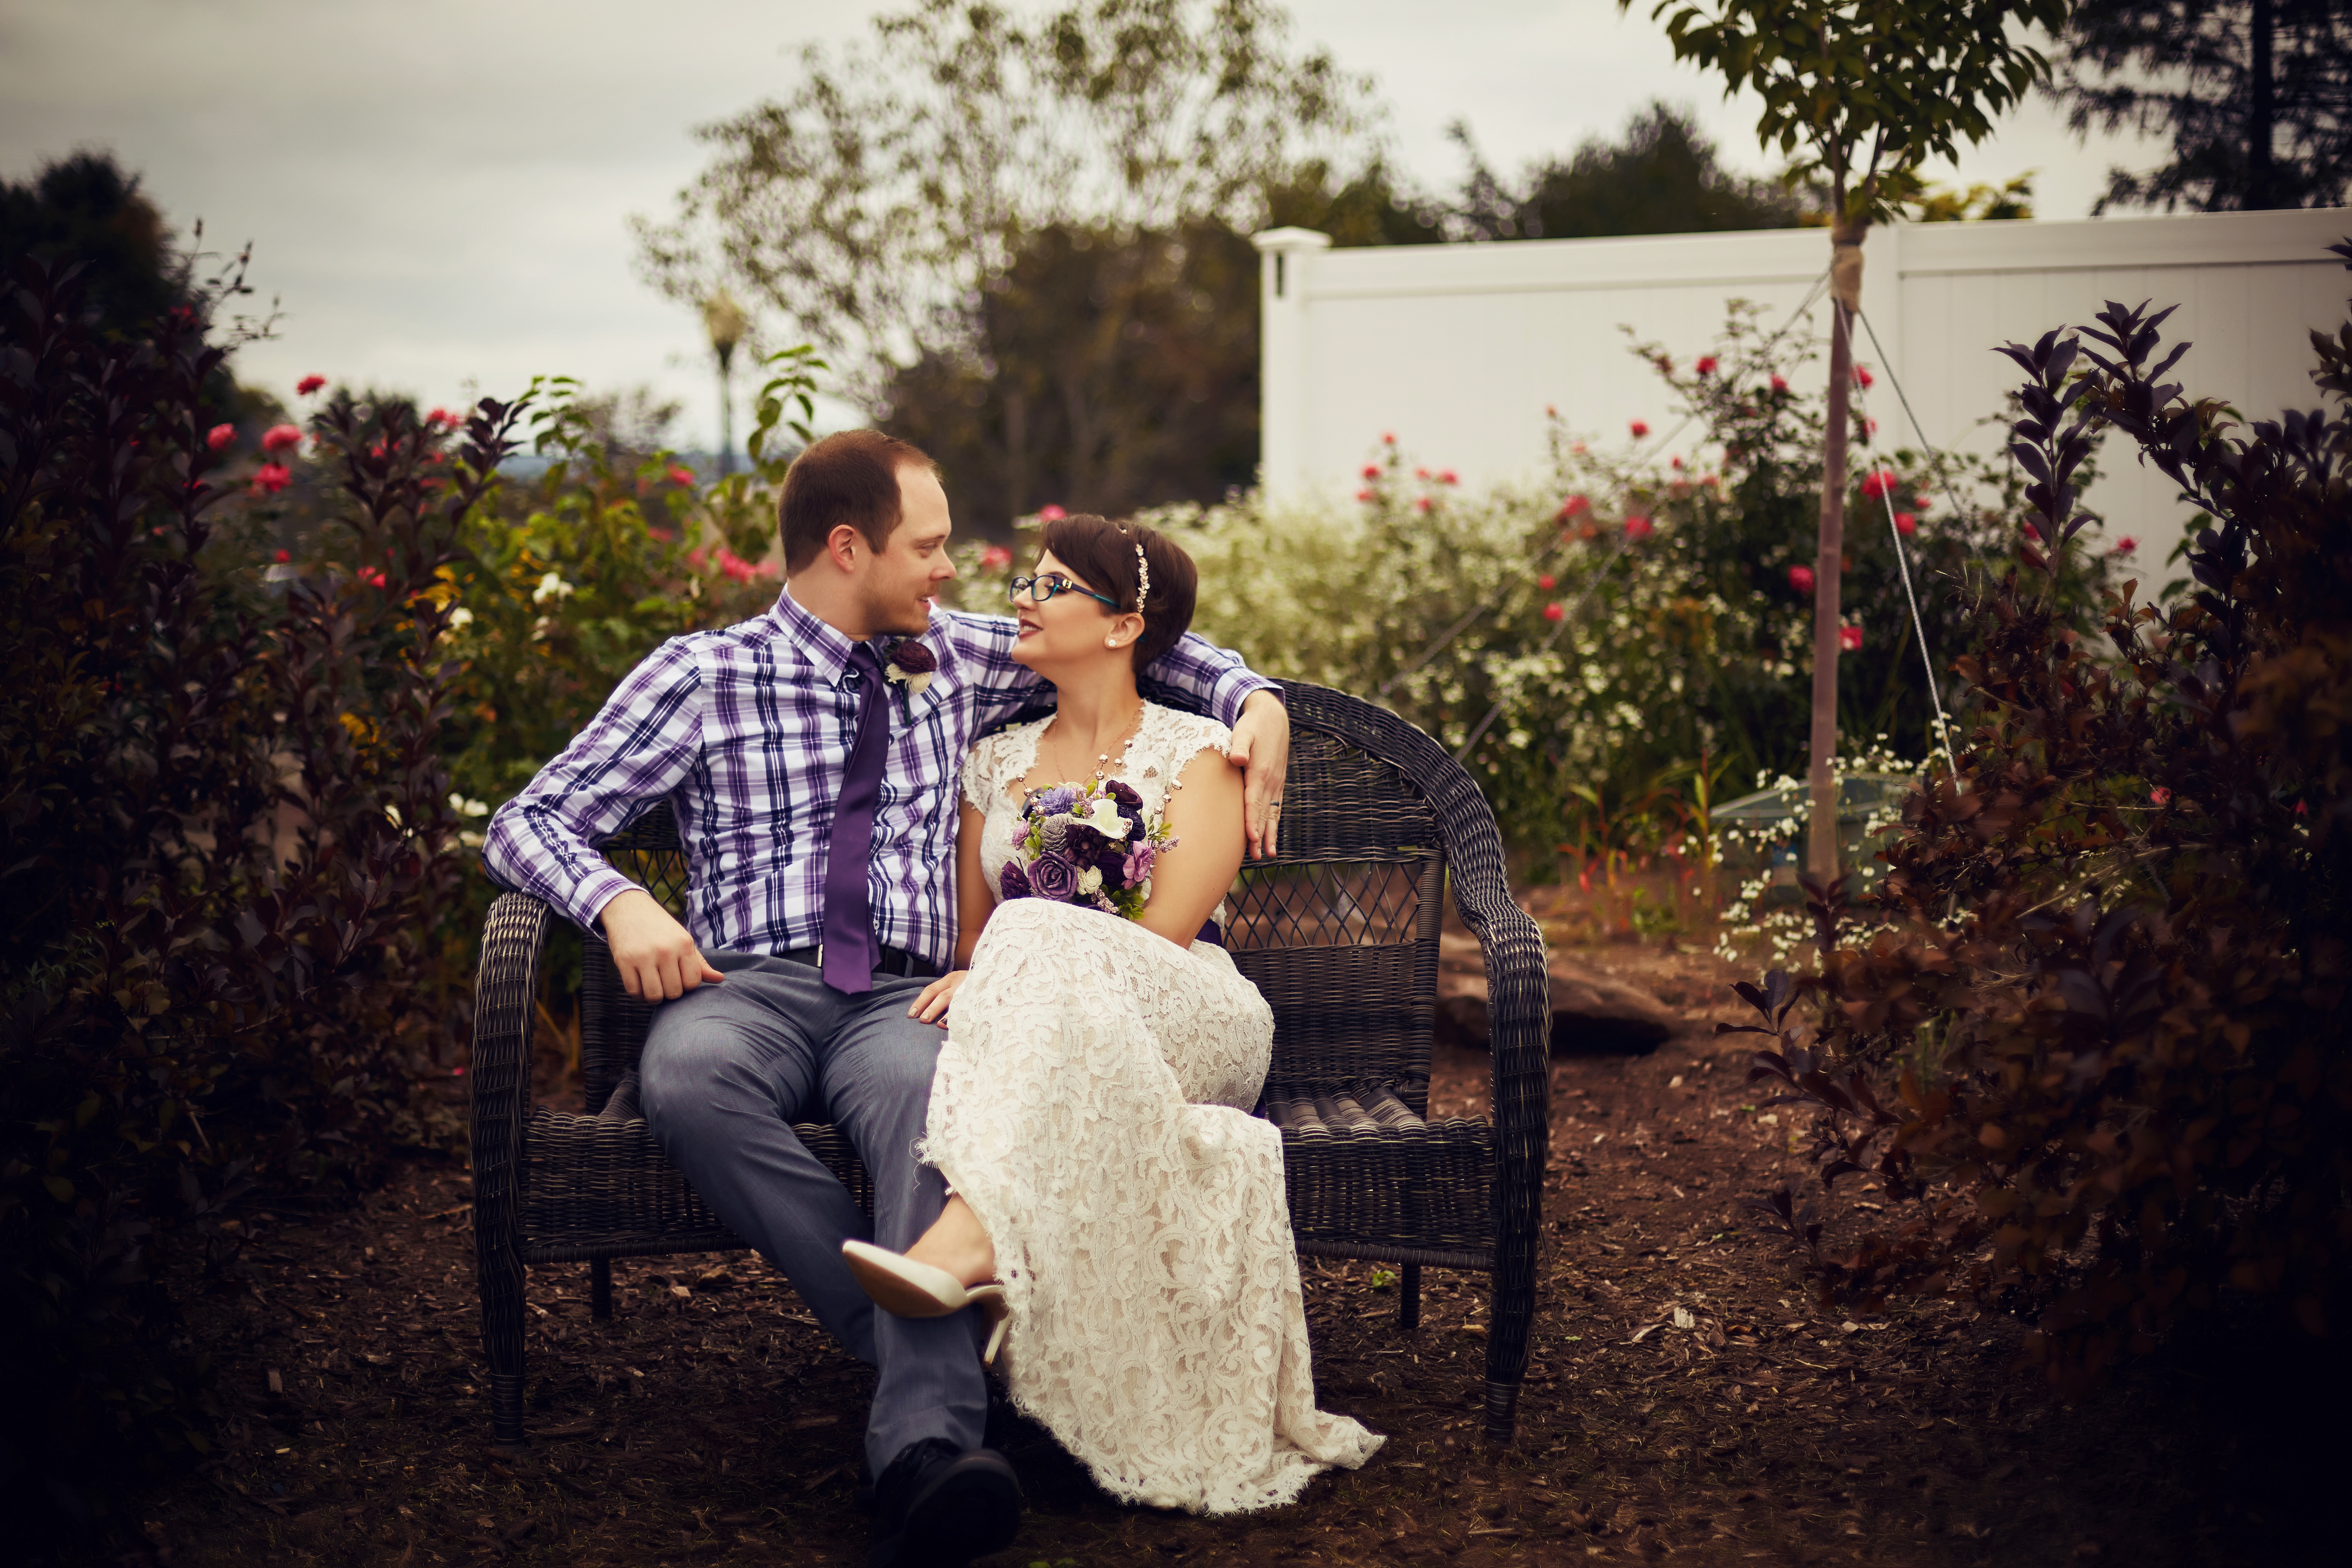 Wedding Photography in Memories at the Tradition in Wallingford CT